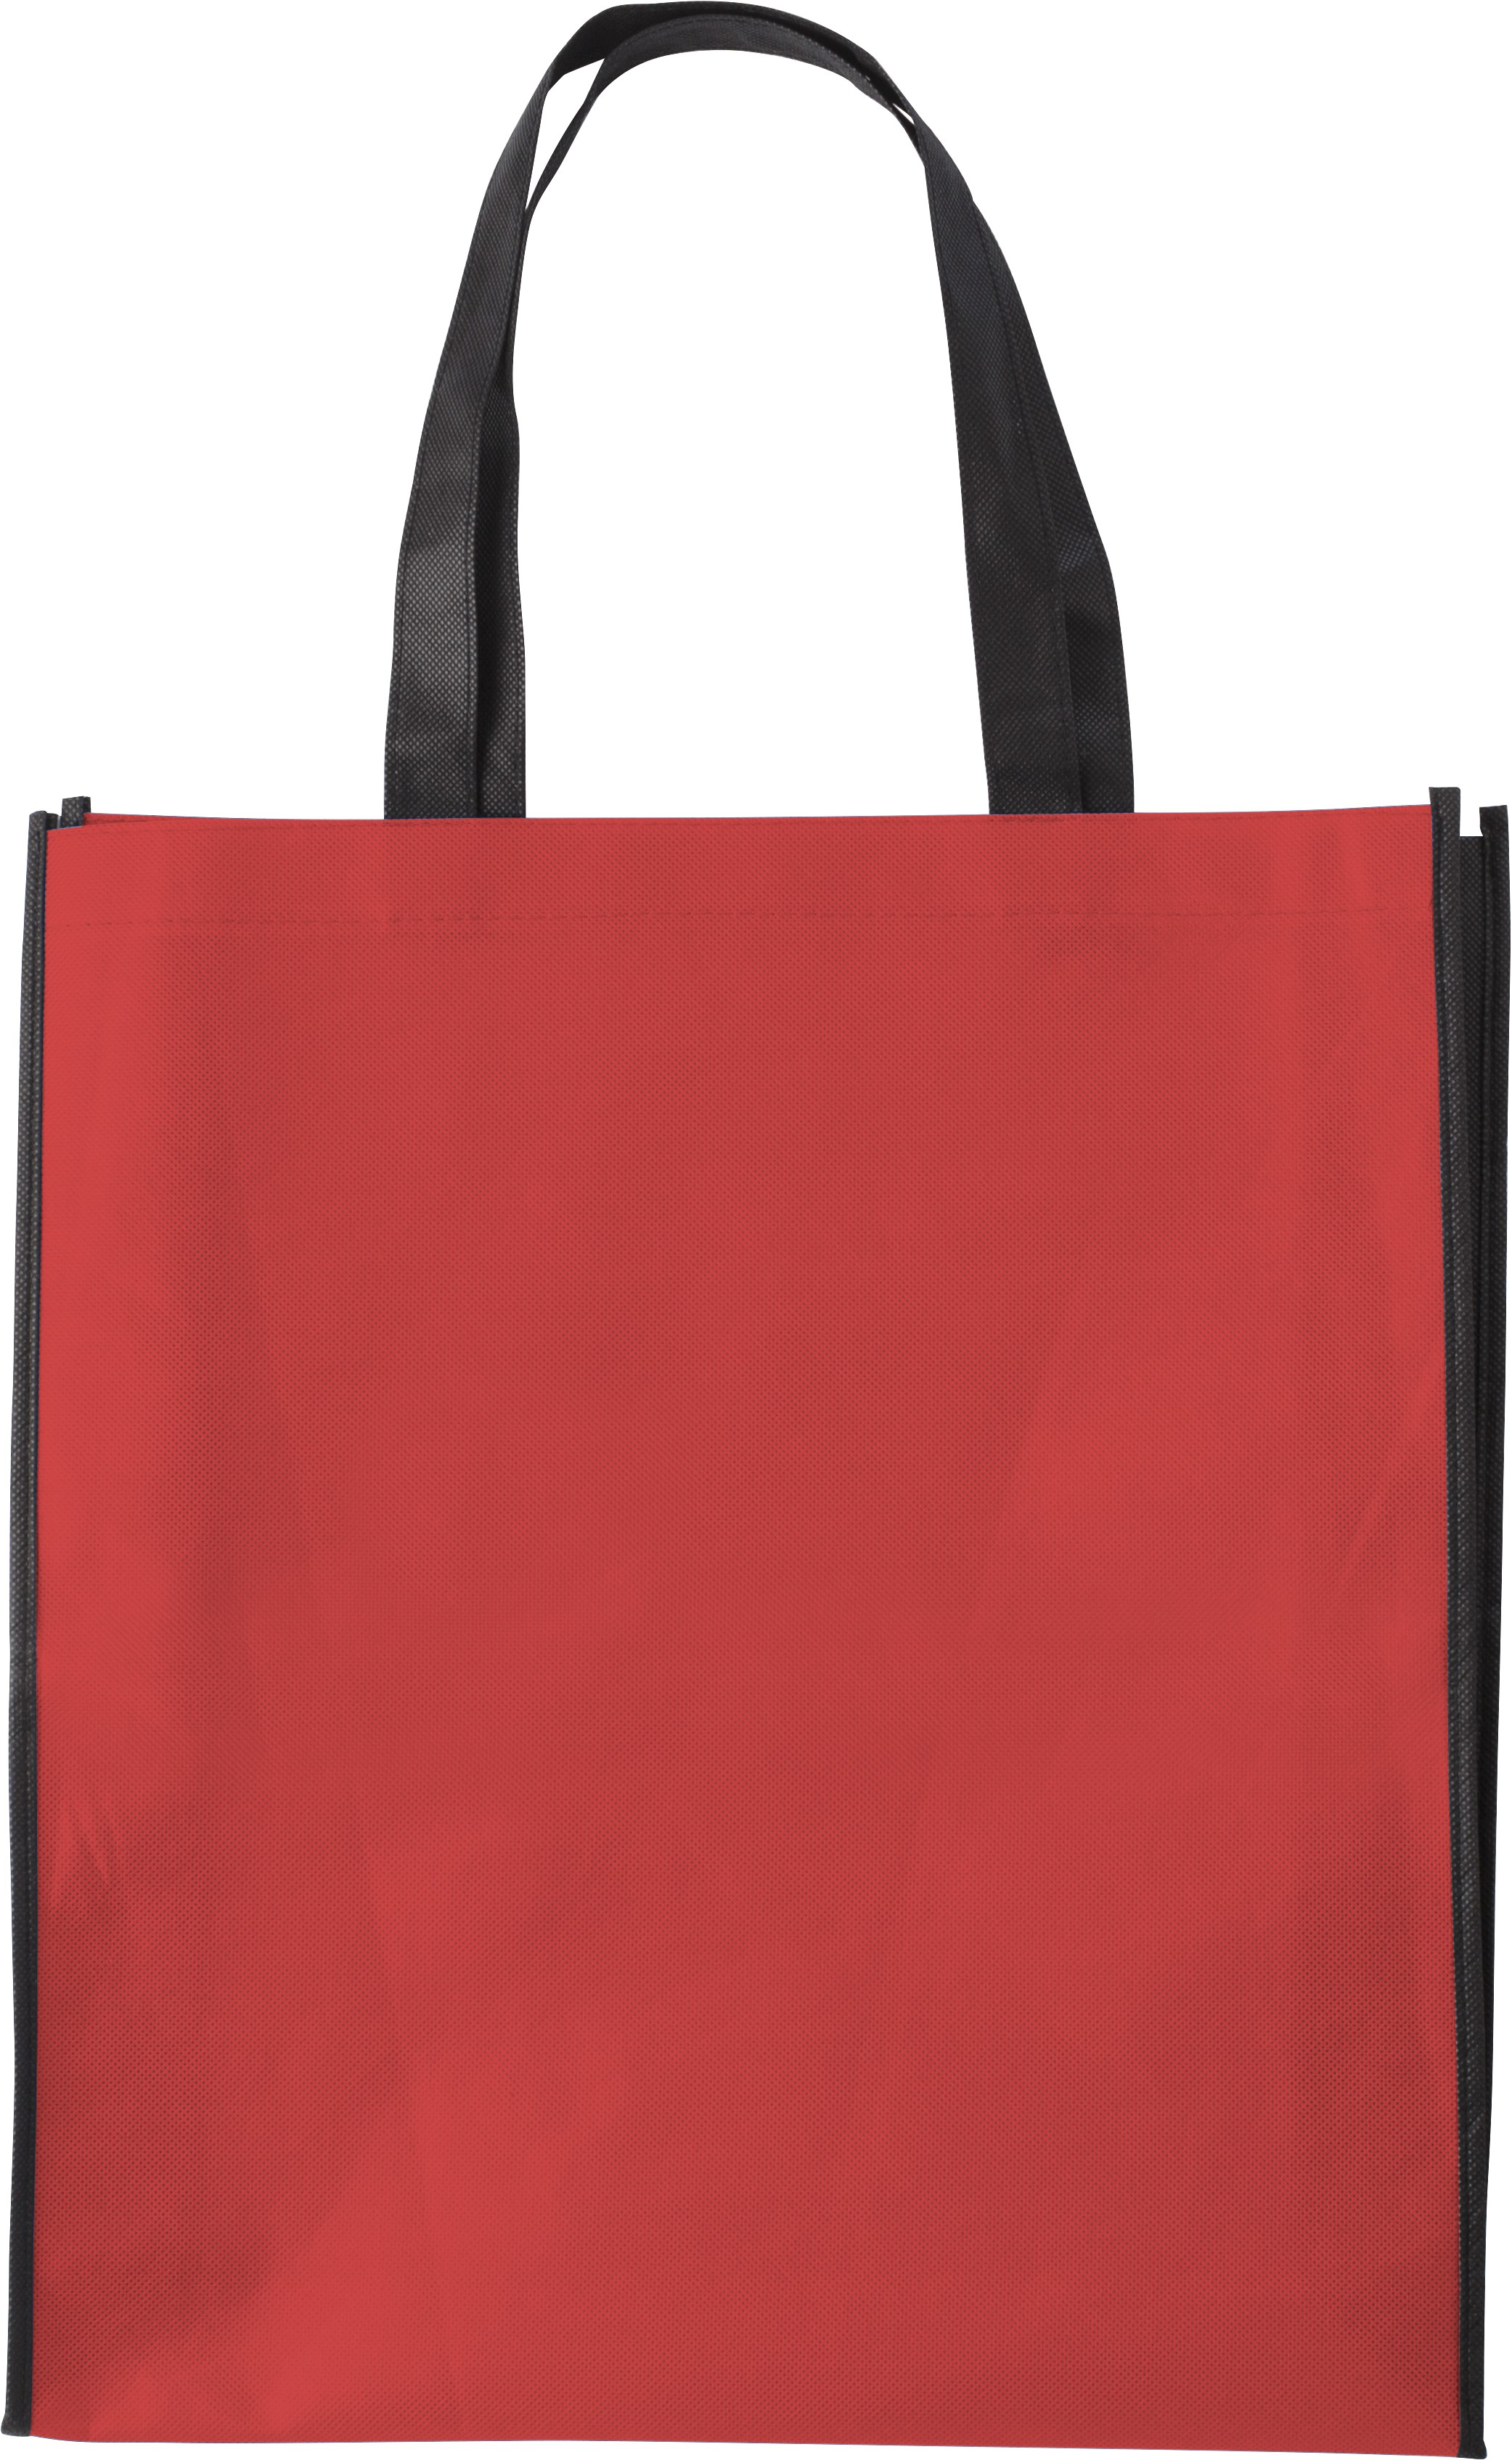 Nonwoven 80 Gr M2 Ping Bag Red Shoulderbbag